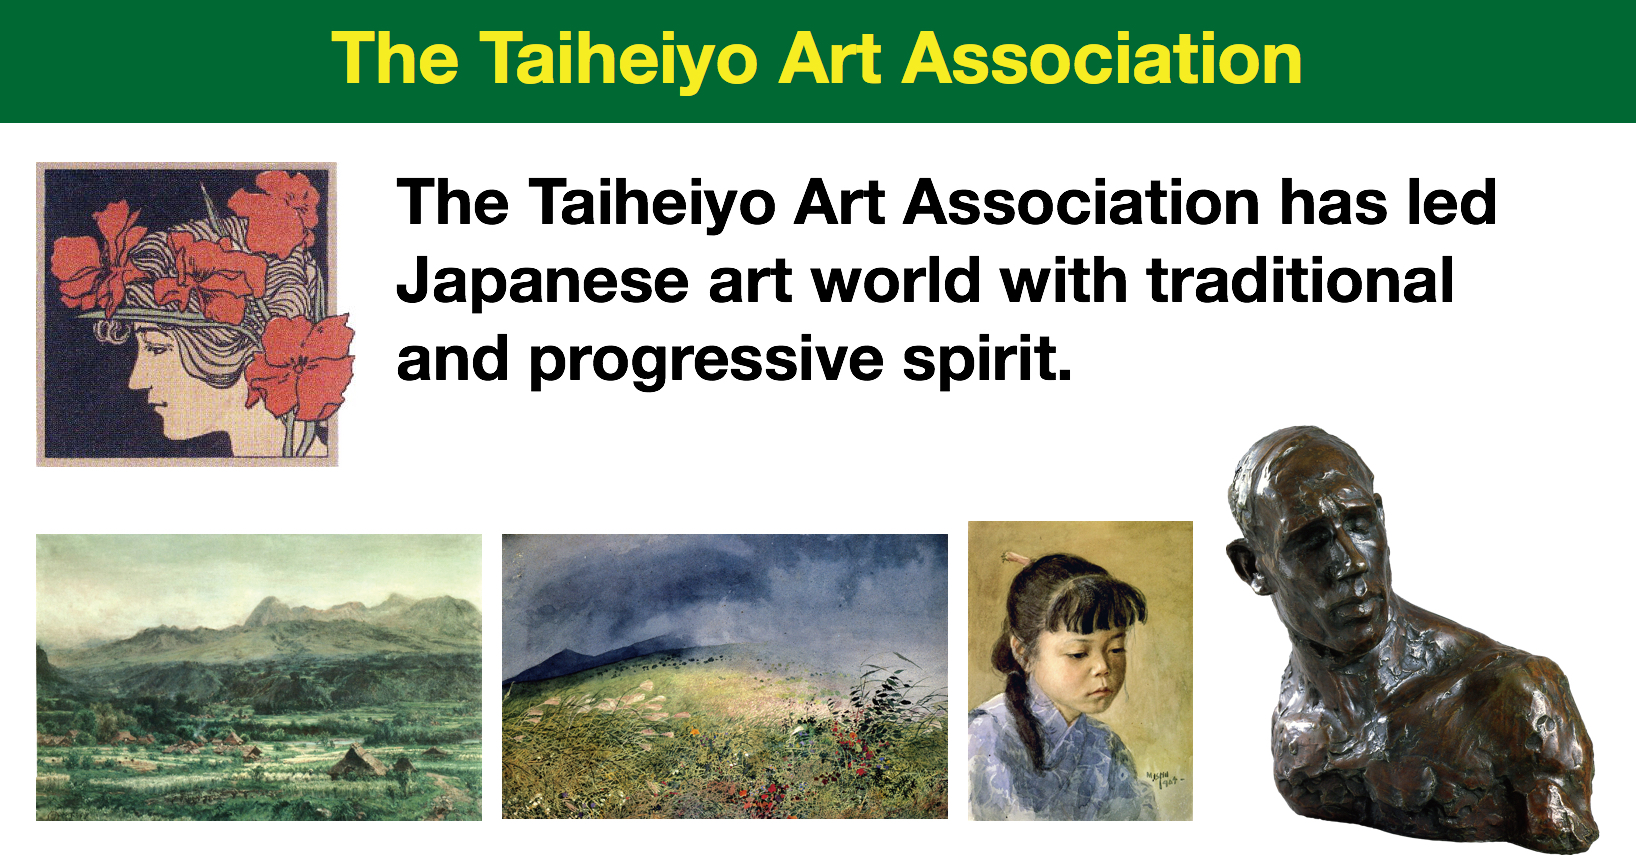 The Taiheiyo Art Association